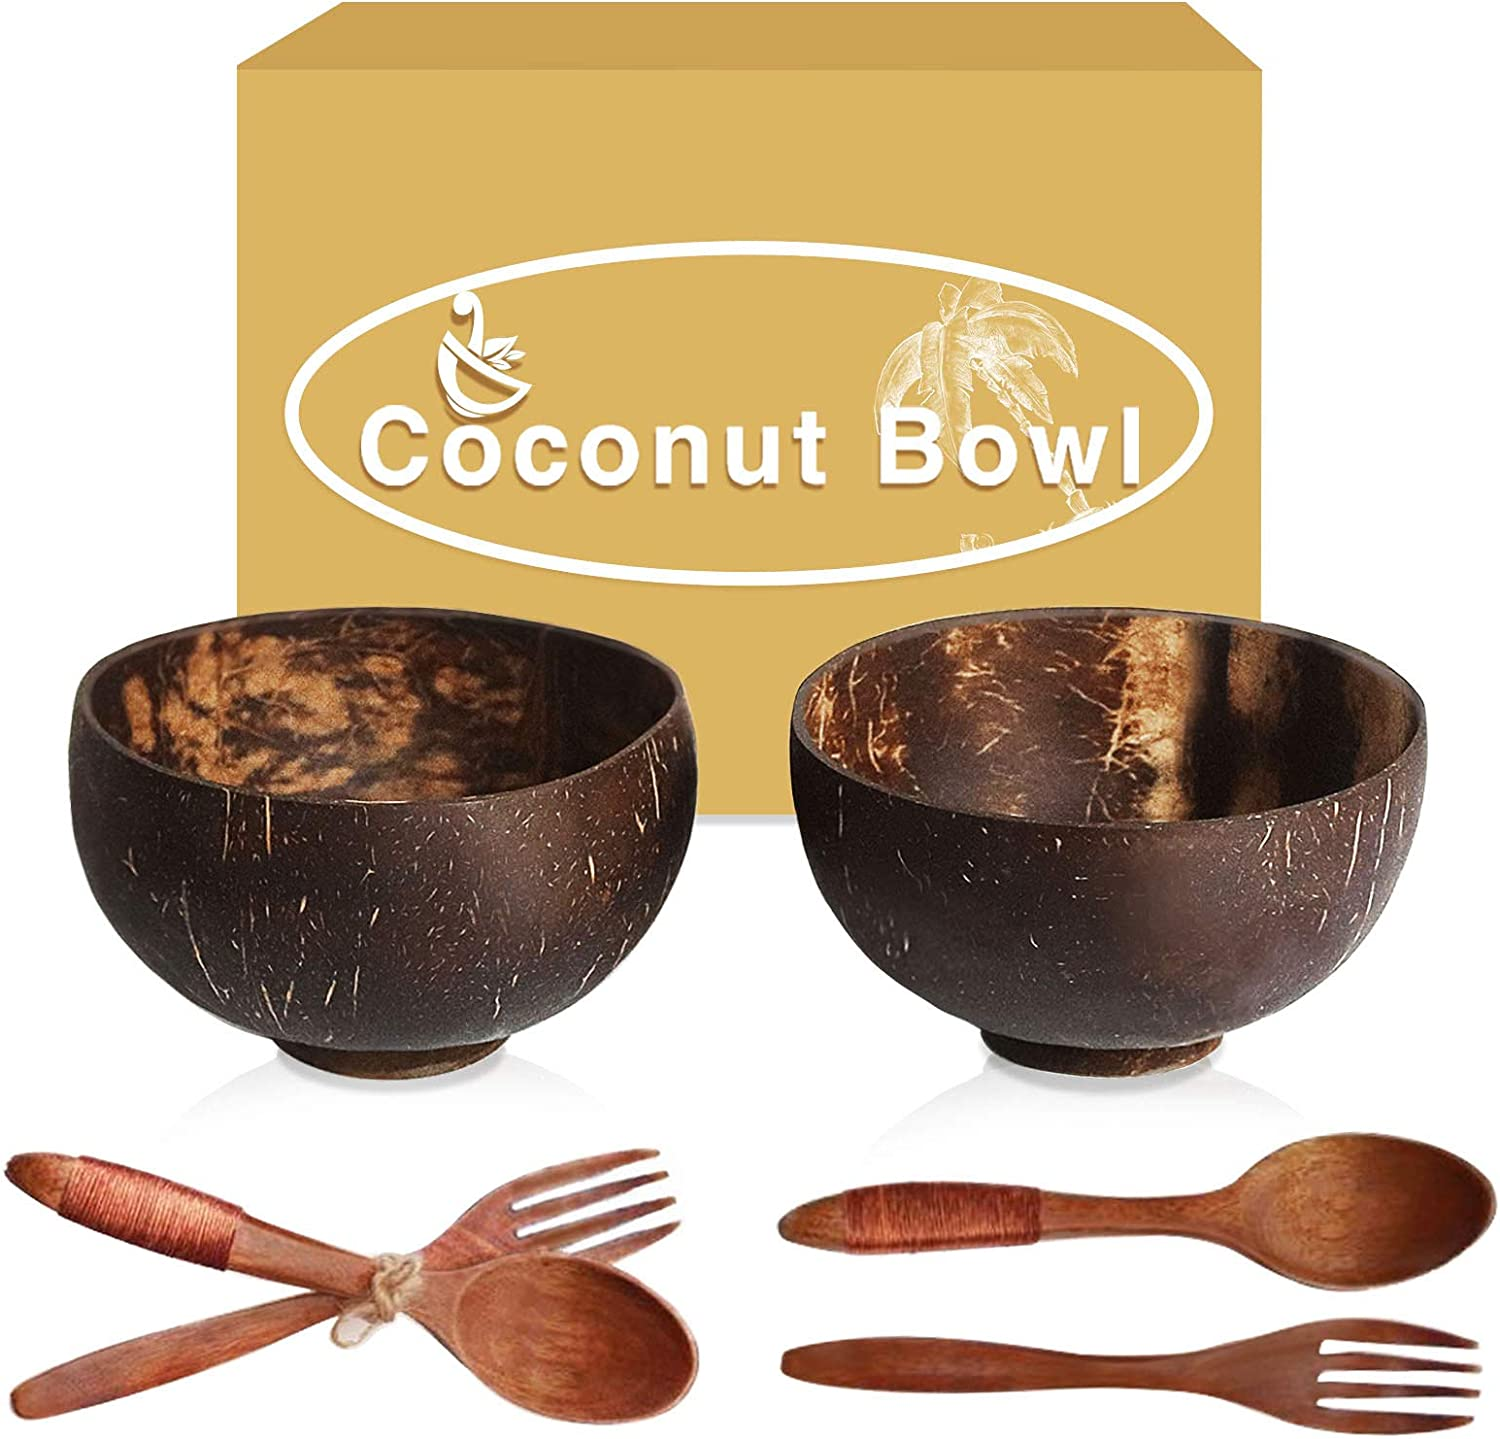 Coconut Bowls With Wooden Spoons, Wooden Forks, Each 2, Smoothie Bowls, Salad Bowls, Hand Made Crafts, candle bowls,Good Gift for Salad Smoothie Breakfast. Wooden Bowls Set for Children..